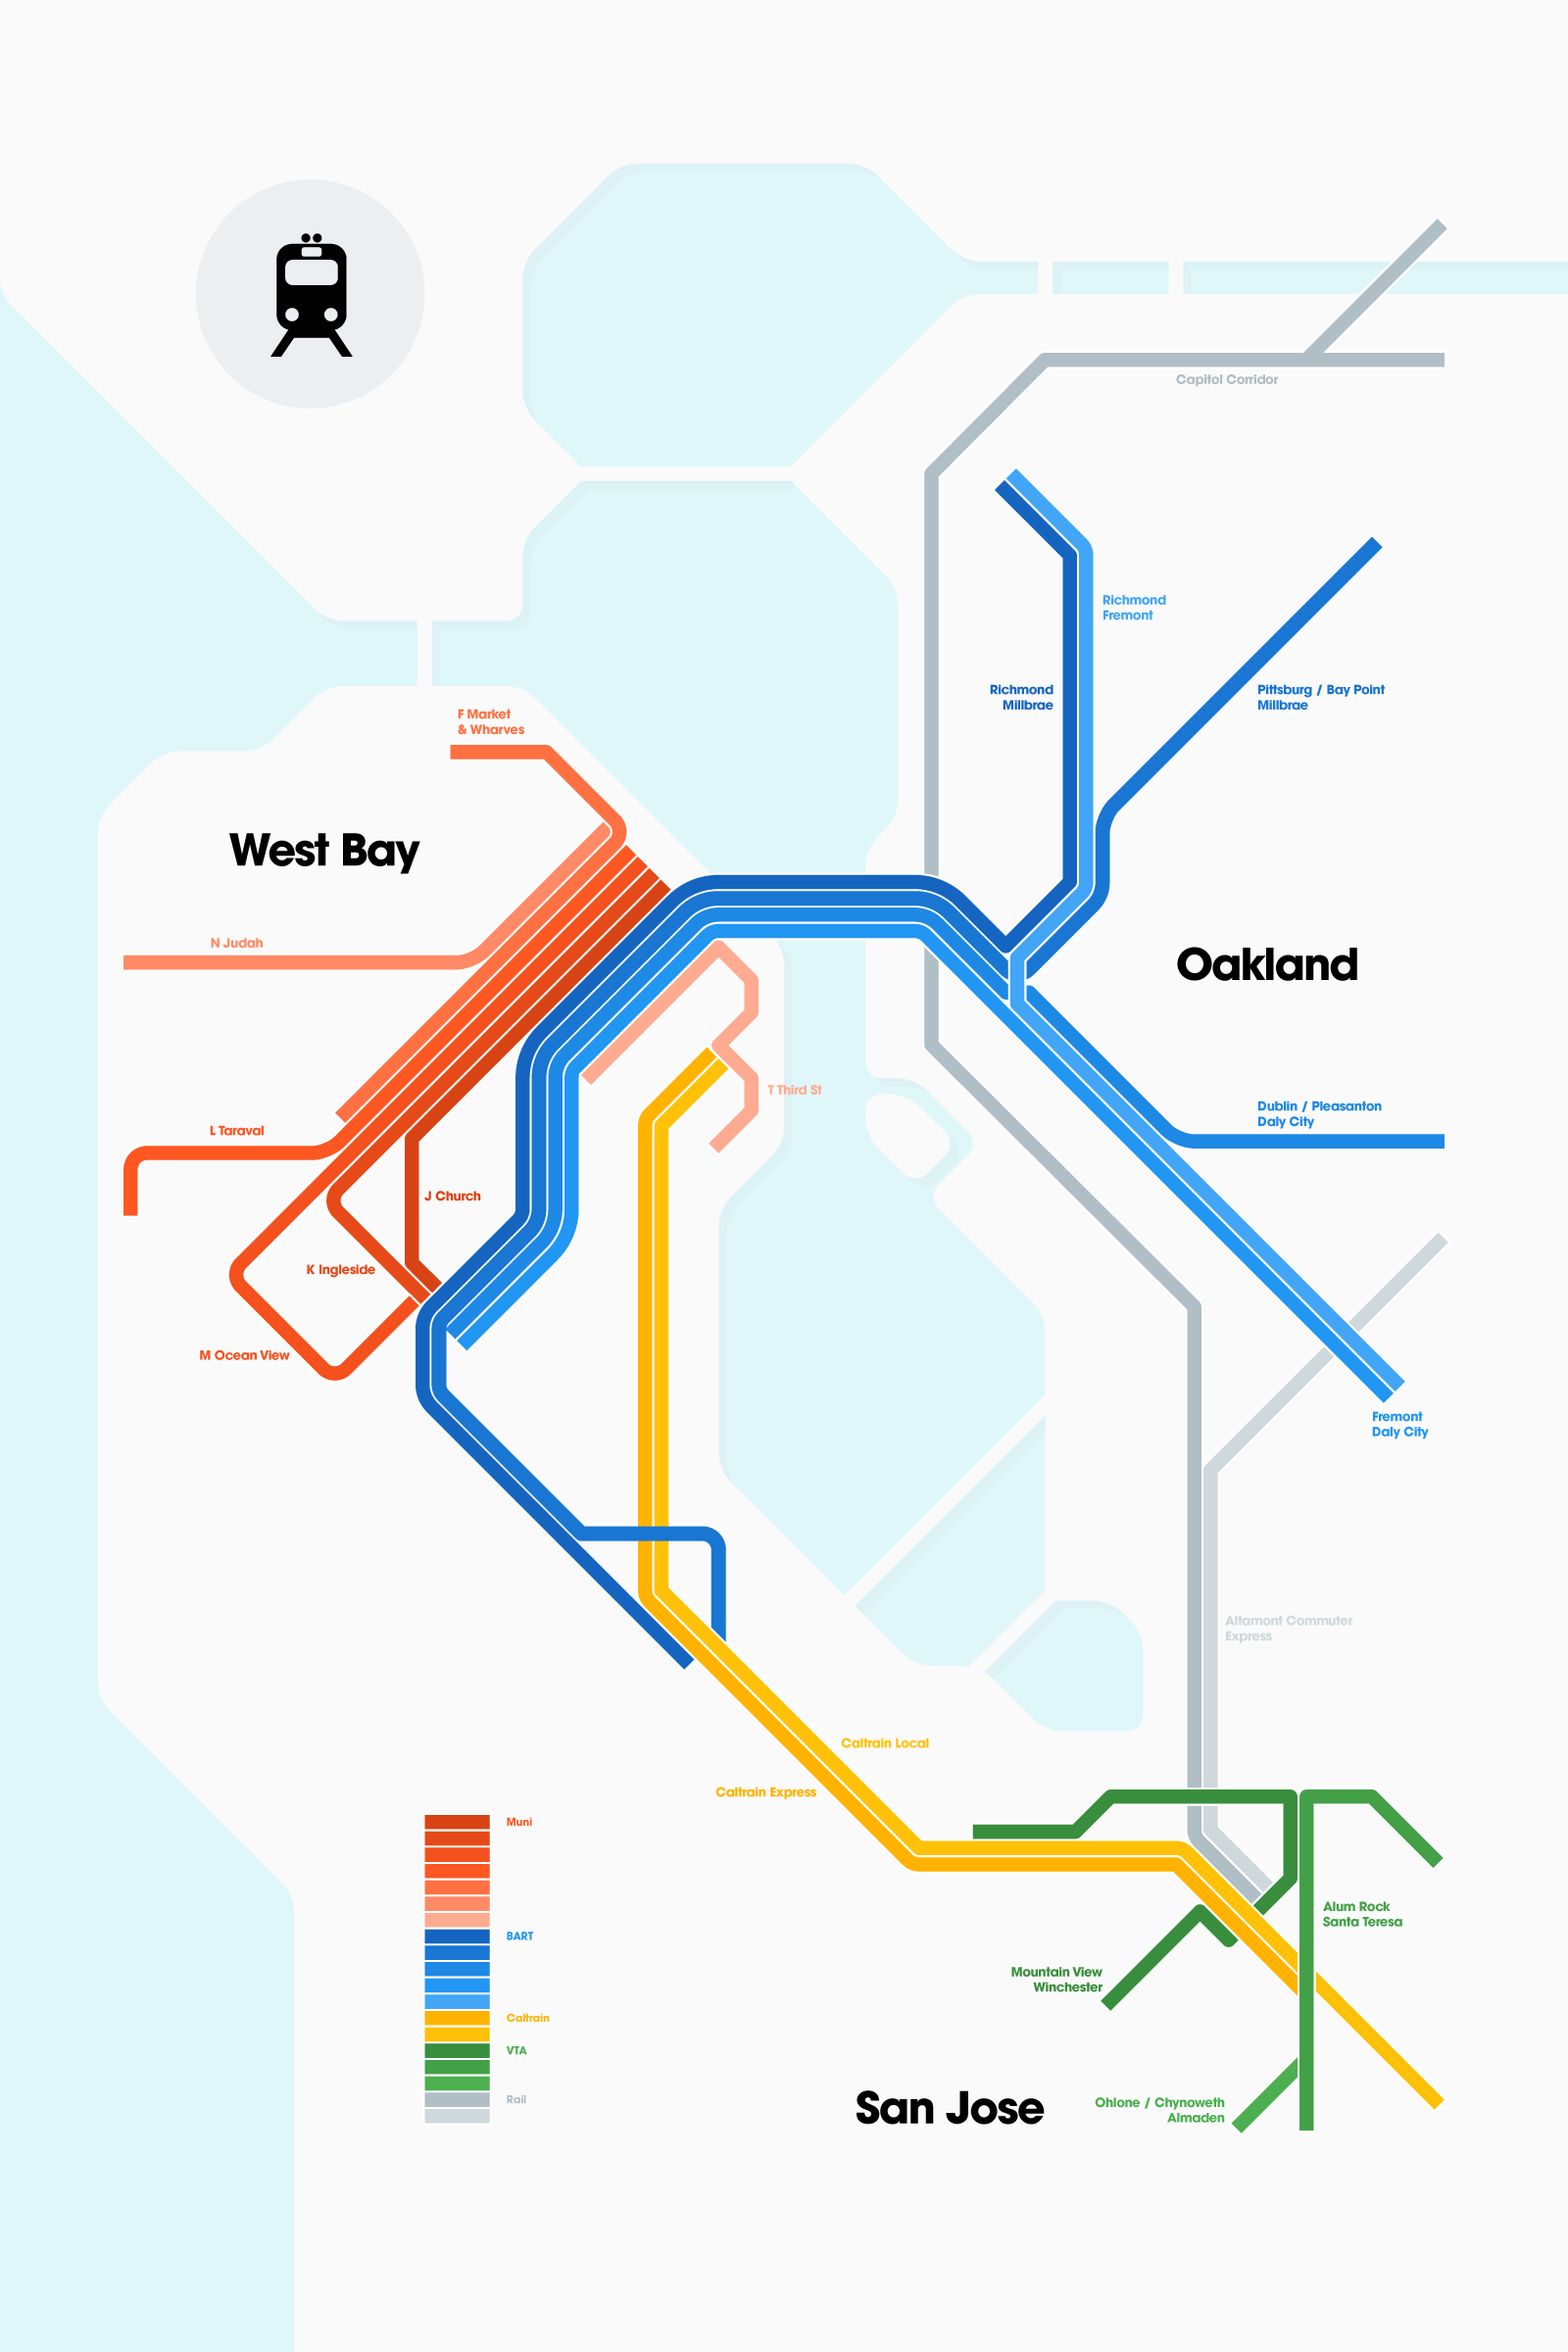 Getting Muni Rail Bart Caltrain Vta And The Capital Corridor All One Poster San Francisco Oakland Bay Area Train Rail Transit Map Transfer Vi ¿イポグラフィ °ラフィック Bart is a regional heavy rail system serving san francisco, san francisco international airport and through the transbay tube to oakland and other east bay cities in alameda and contra costa counties, as well as service to san jose via east bay. getting muni rail bart caltrain vta